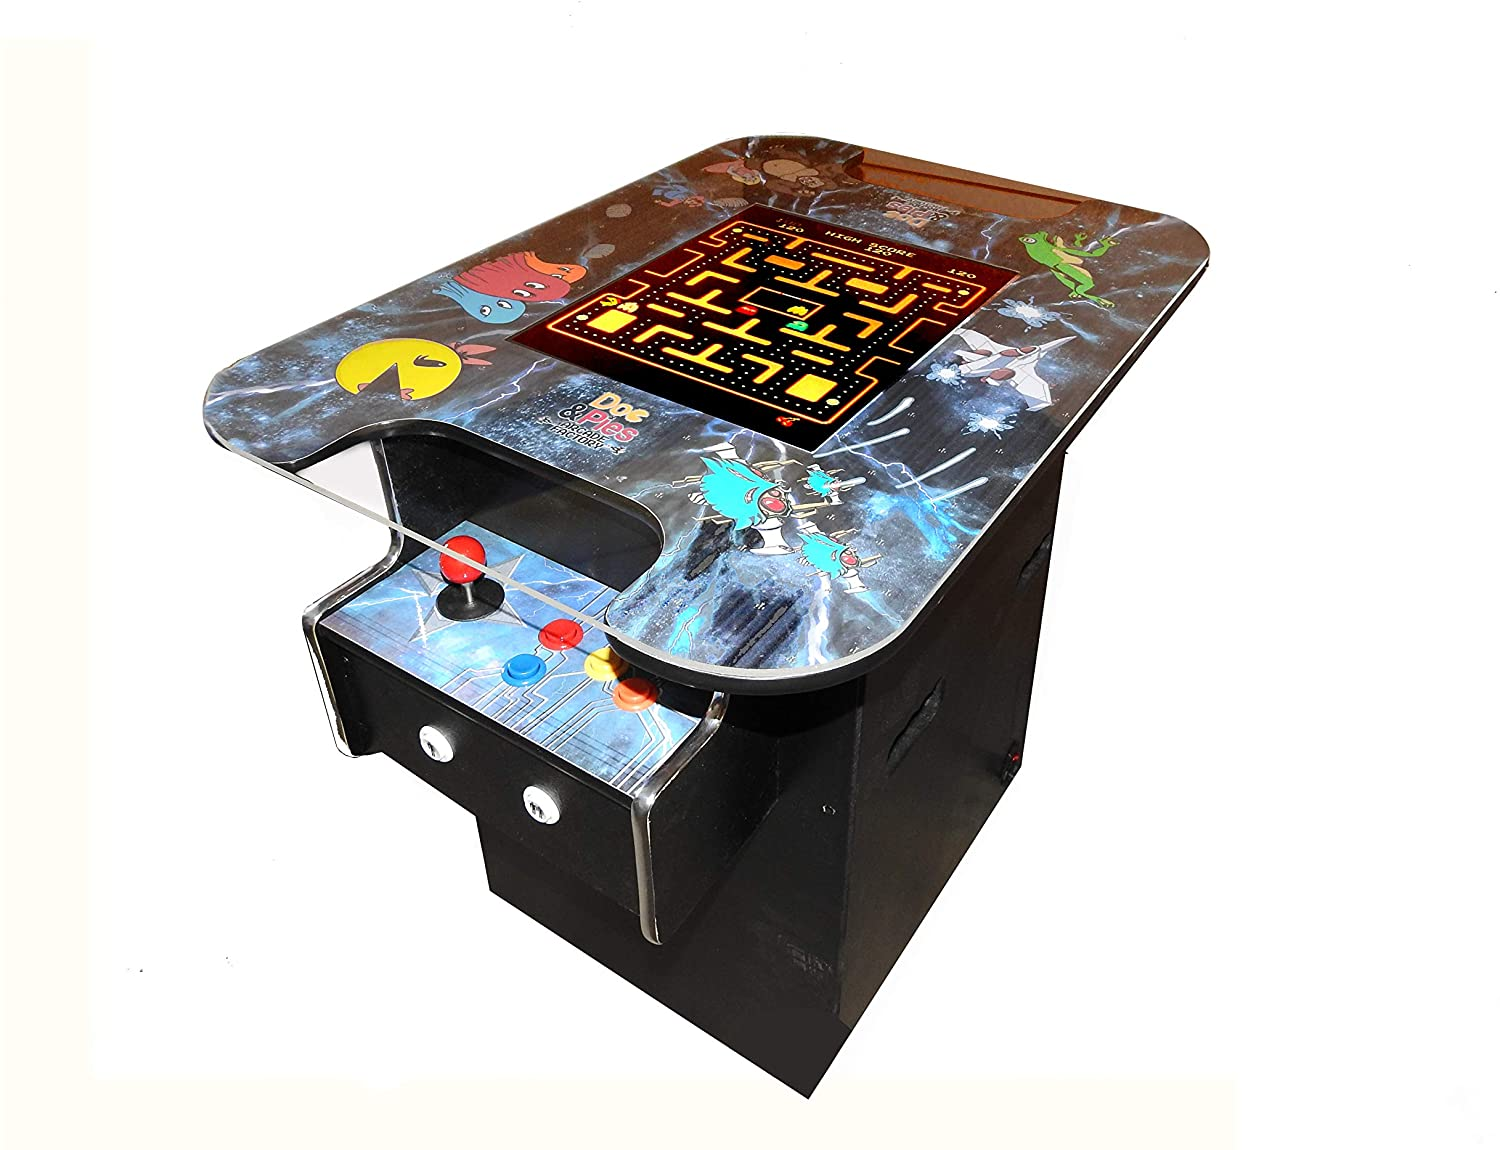 Arcade Factory Cocktail Machine - 3000 Retro Games - Full Size LCD Screen, Buttons and Joystick